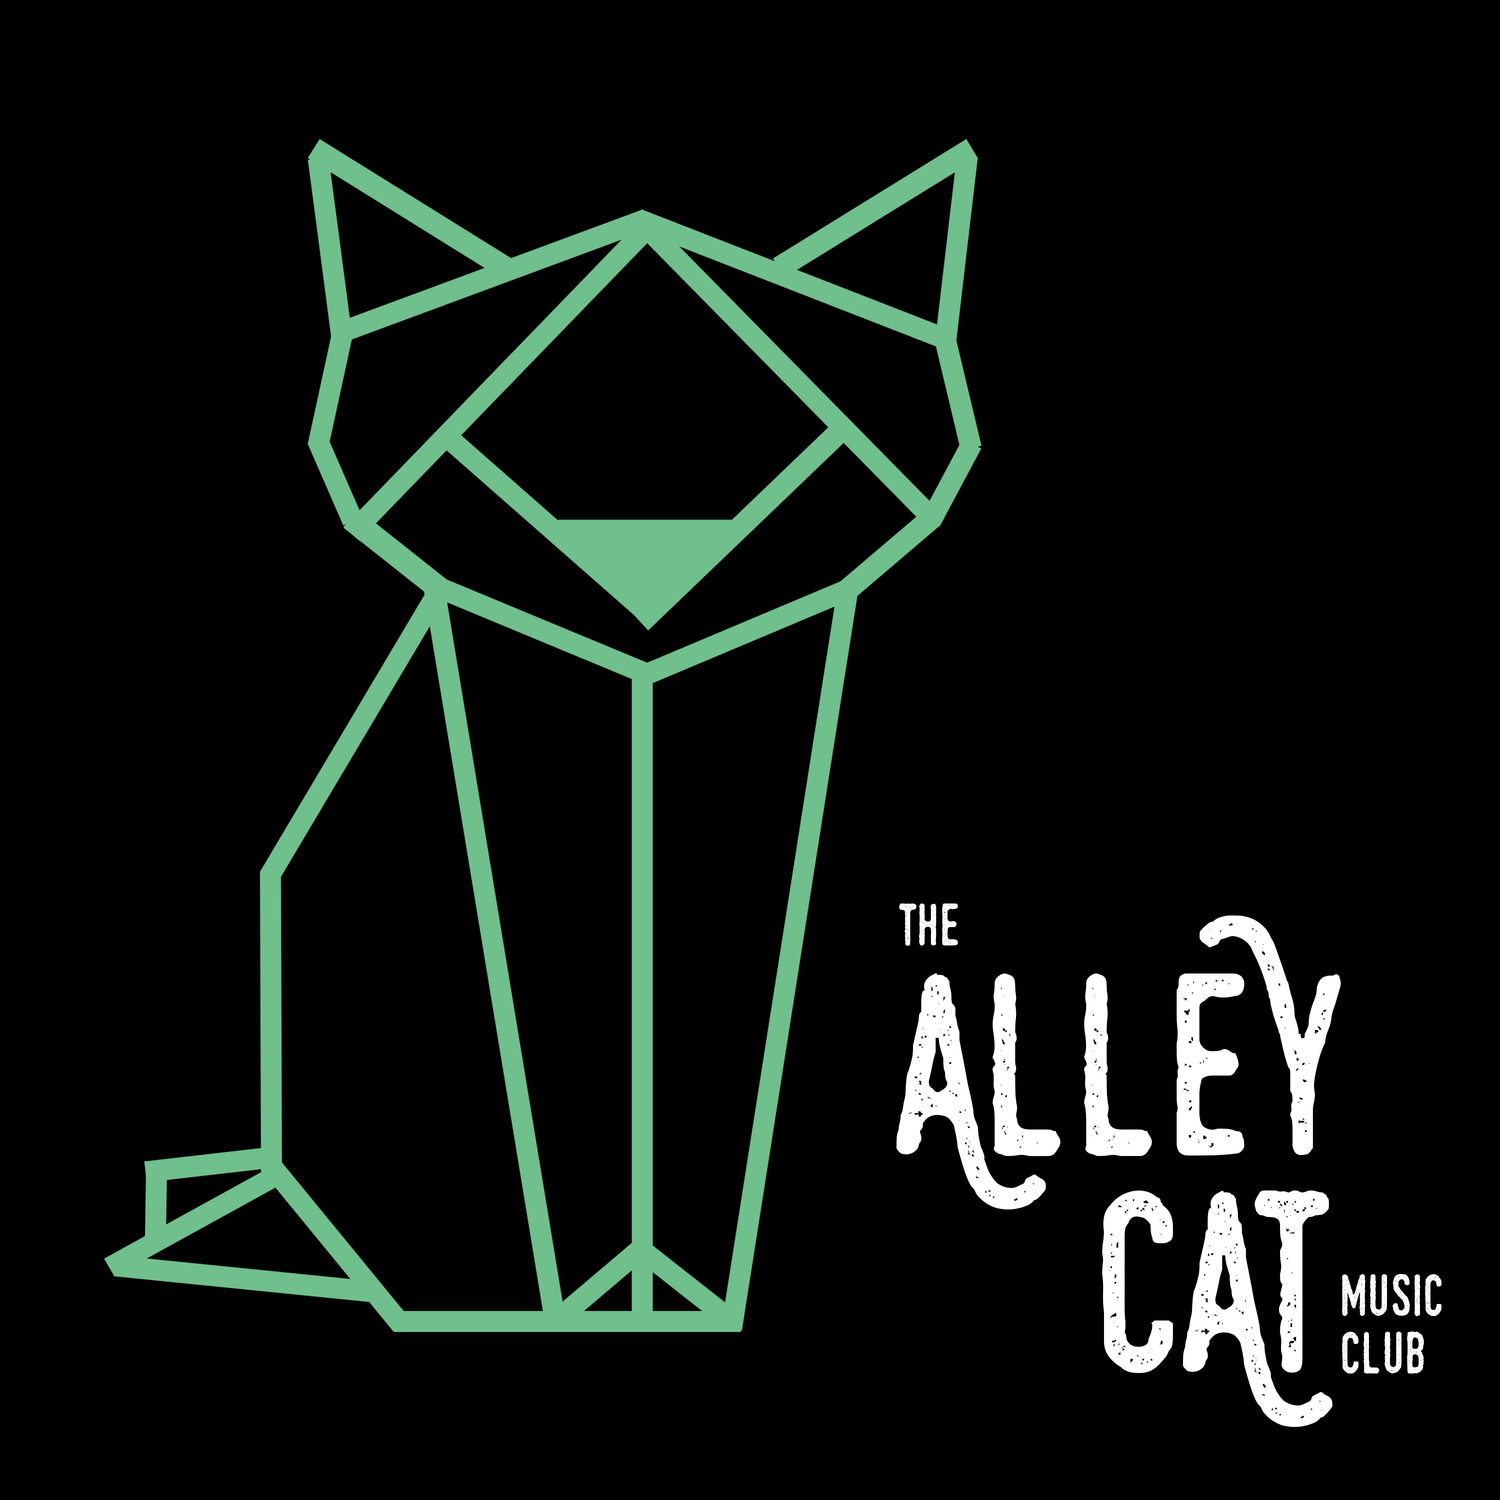 The Alley Cat Music Club